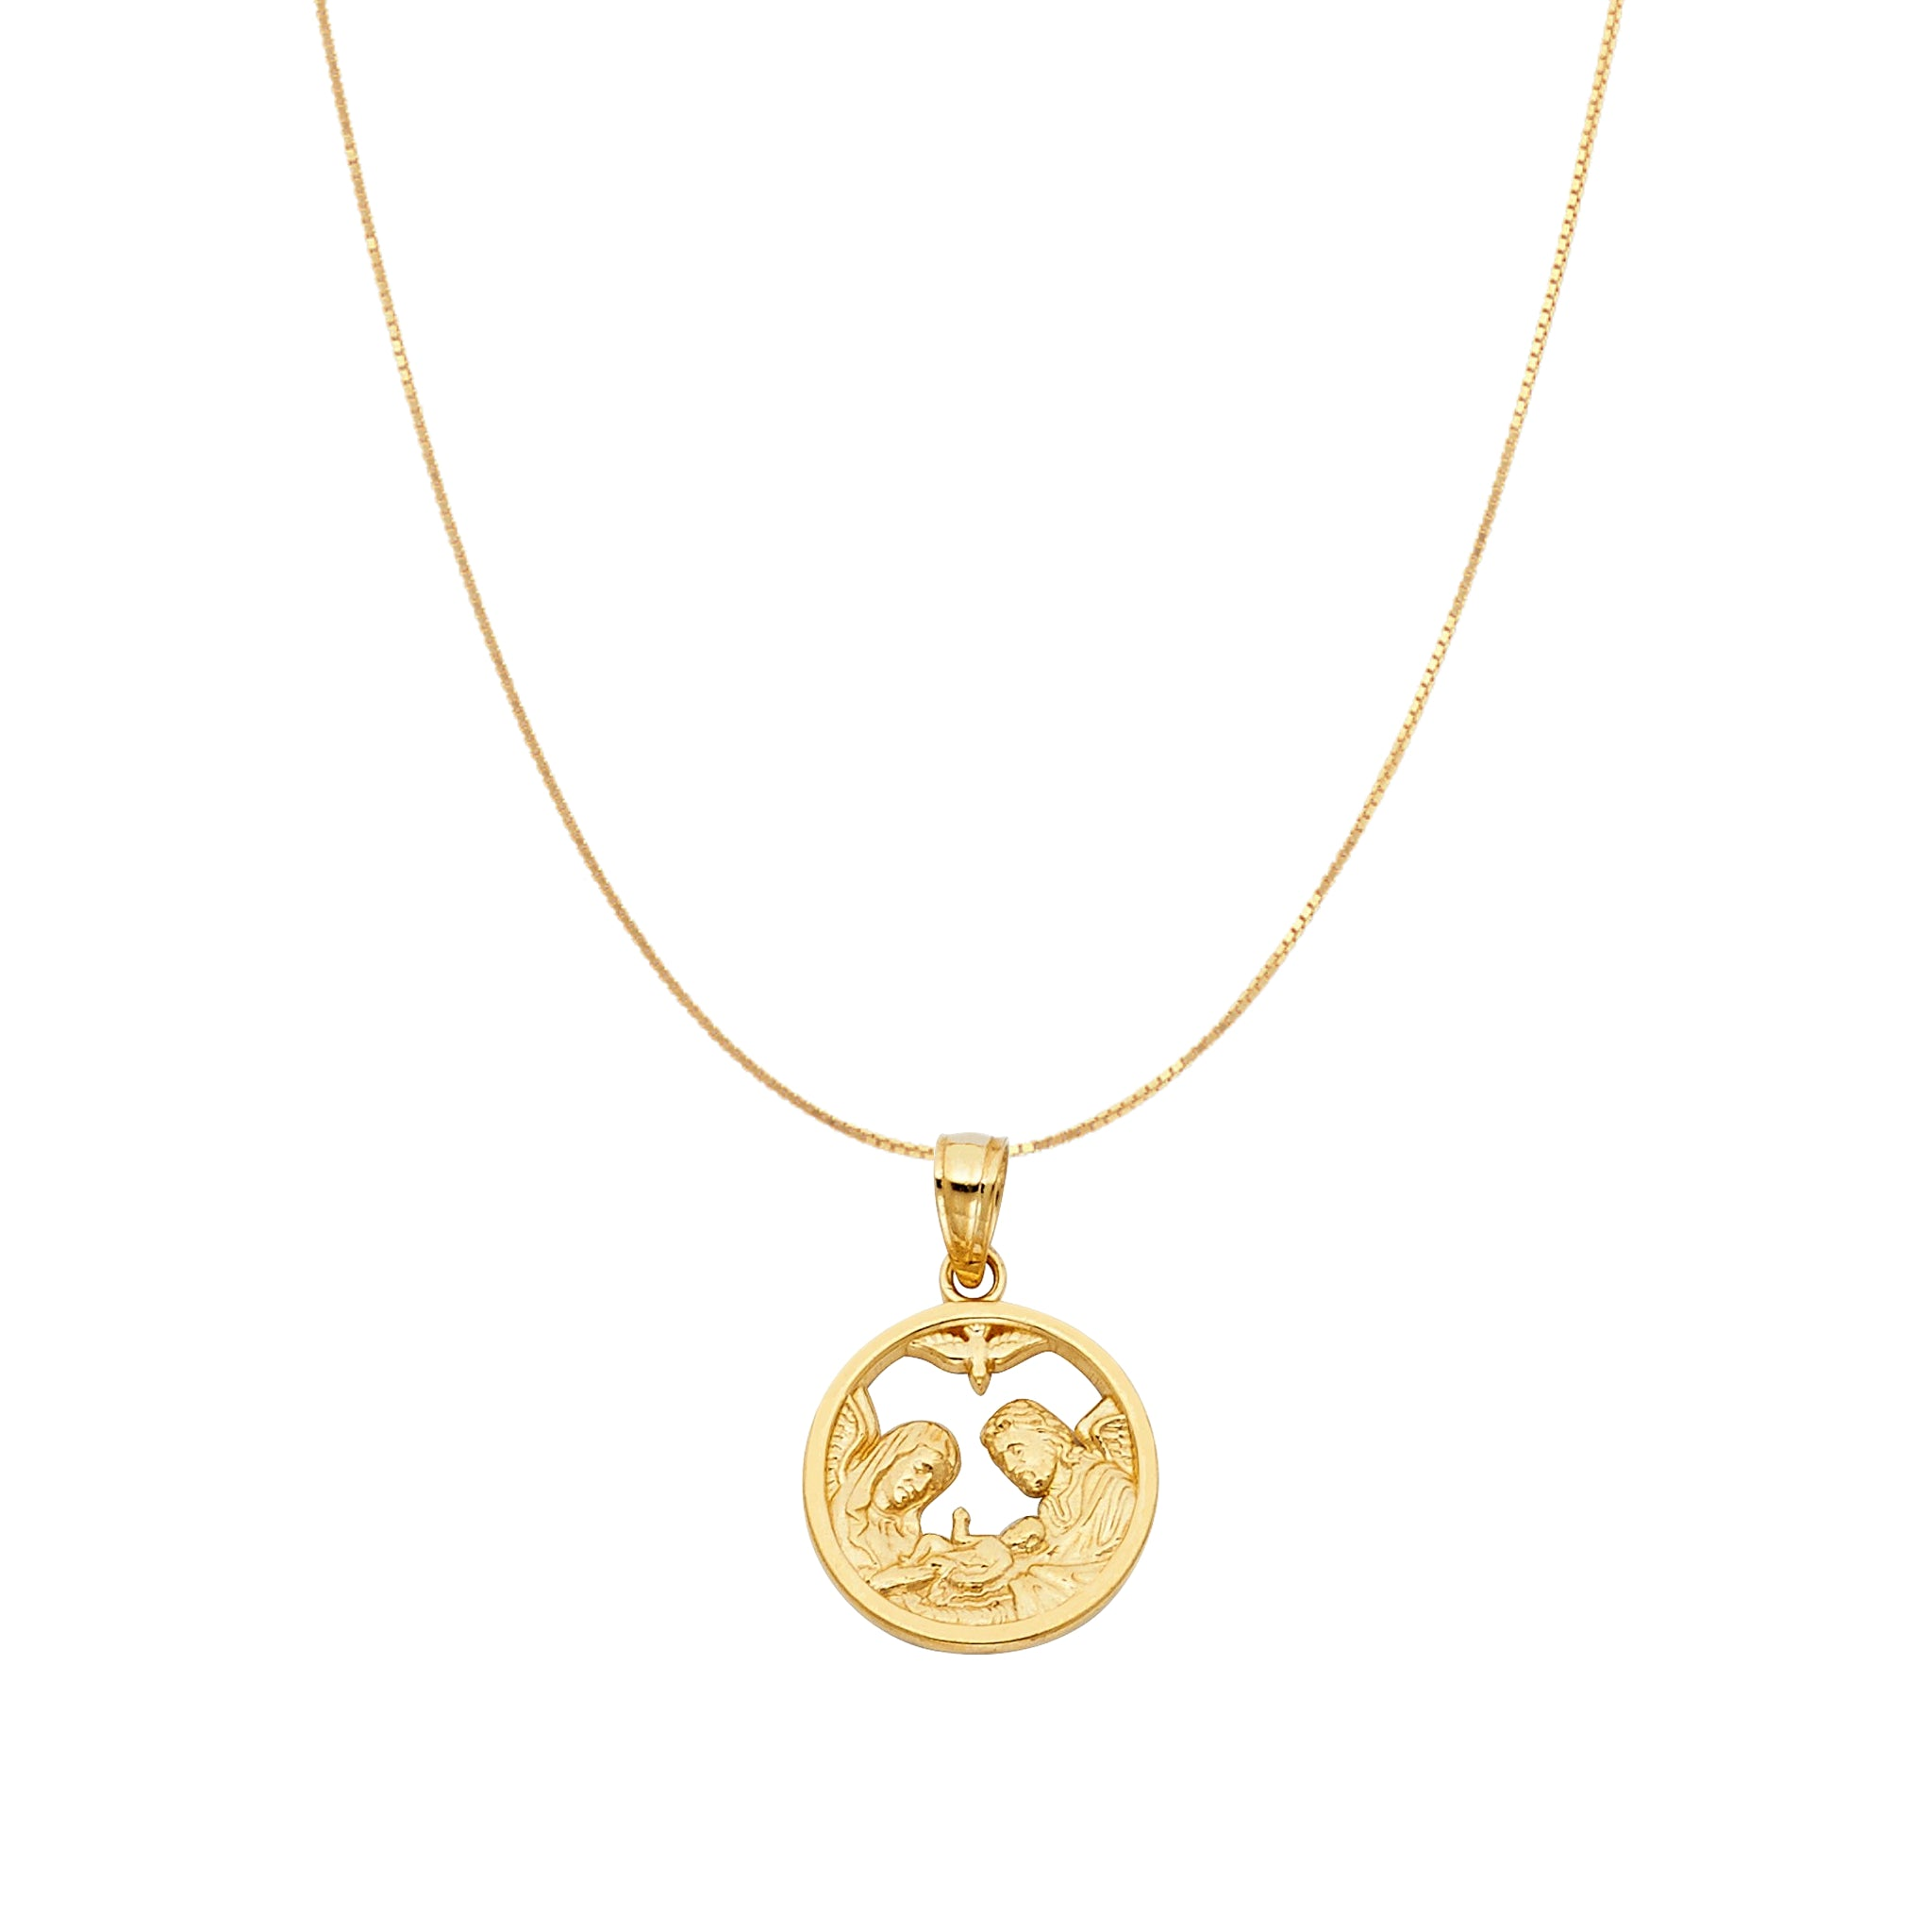 14K Gold Baptism Chain Necklace Pendant